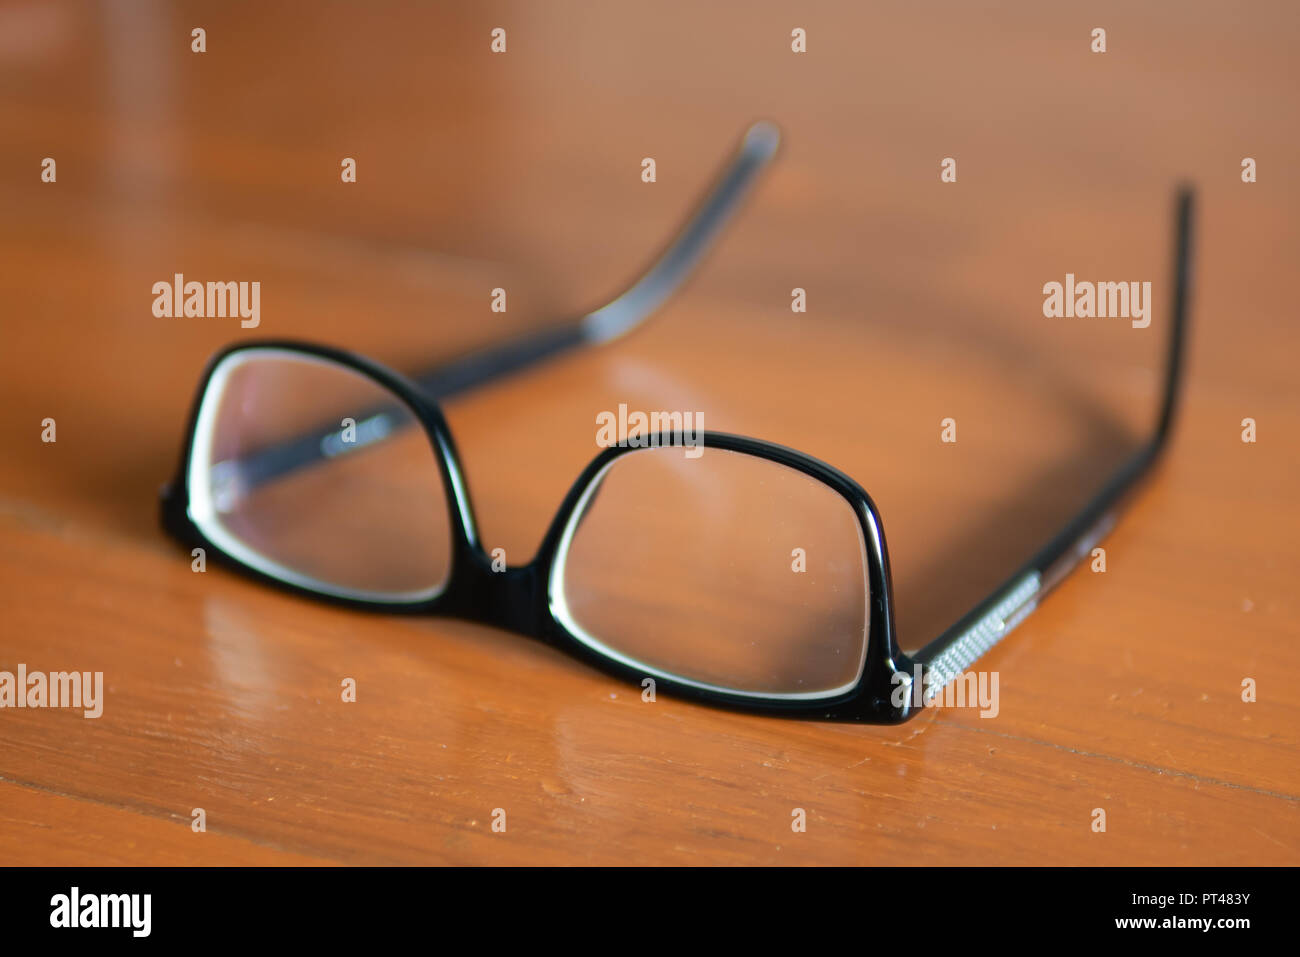 Eyeglasses on wooden table - Stock Image